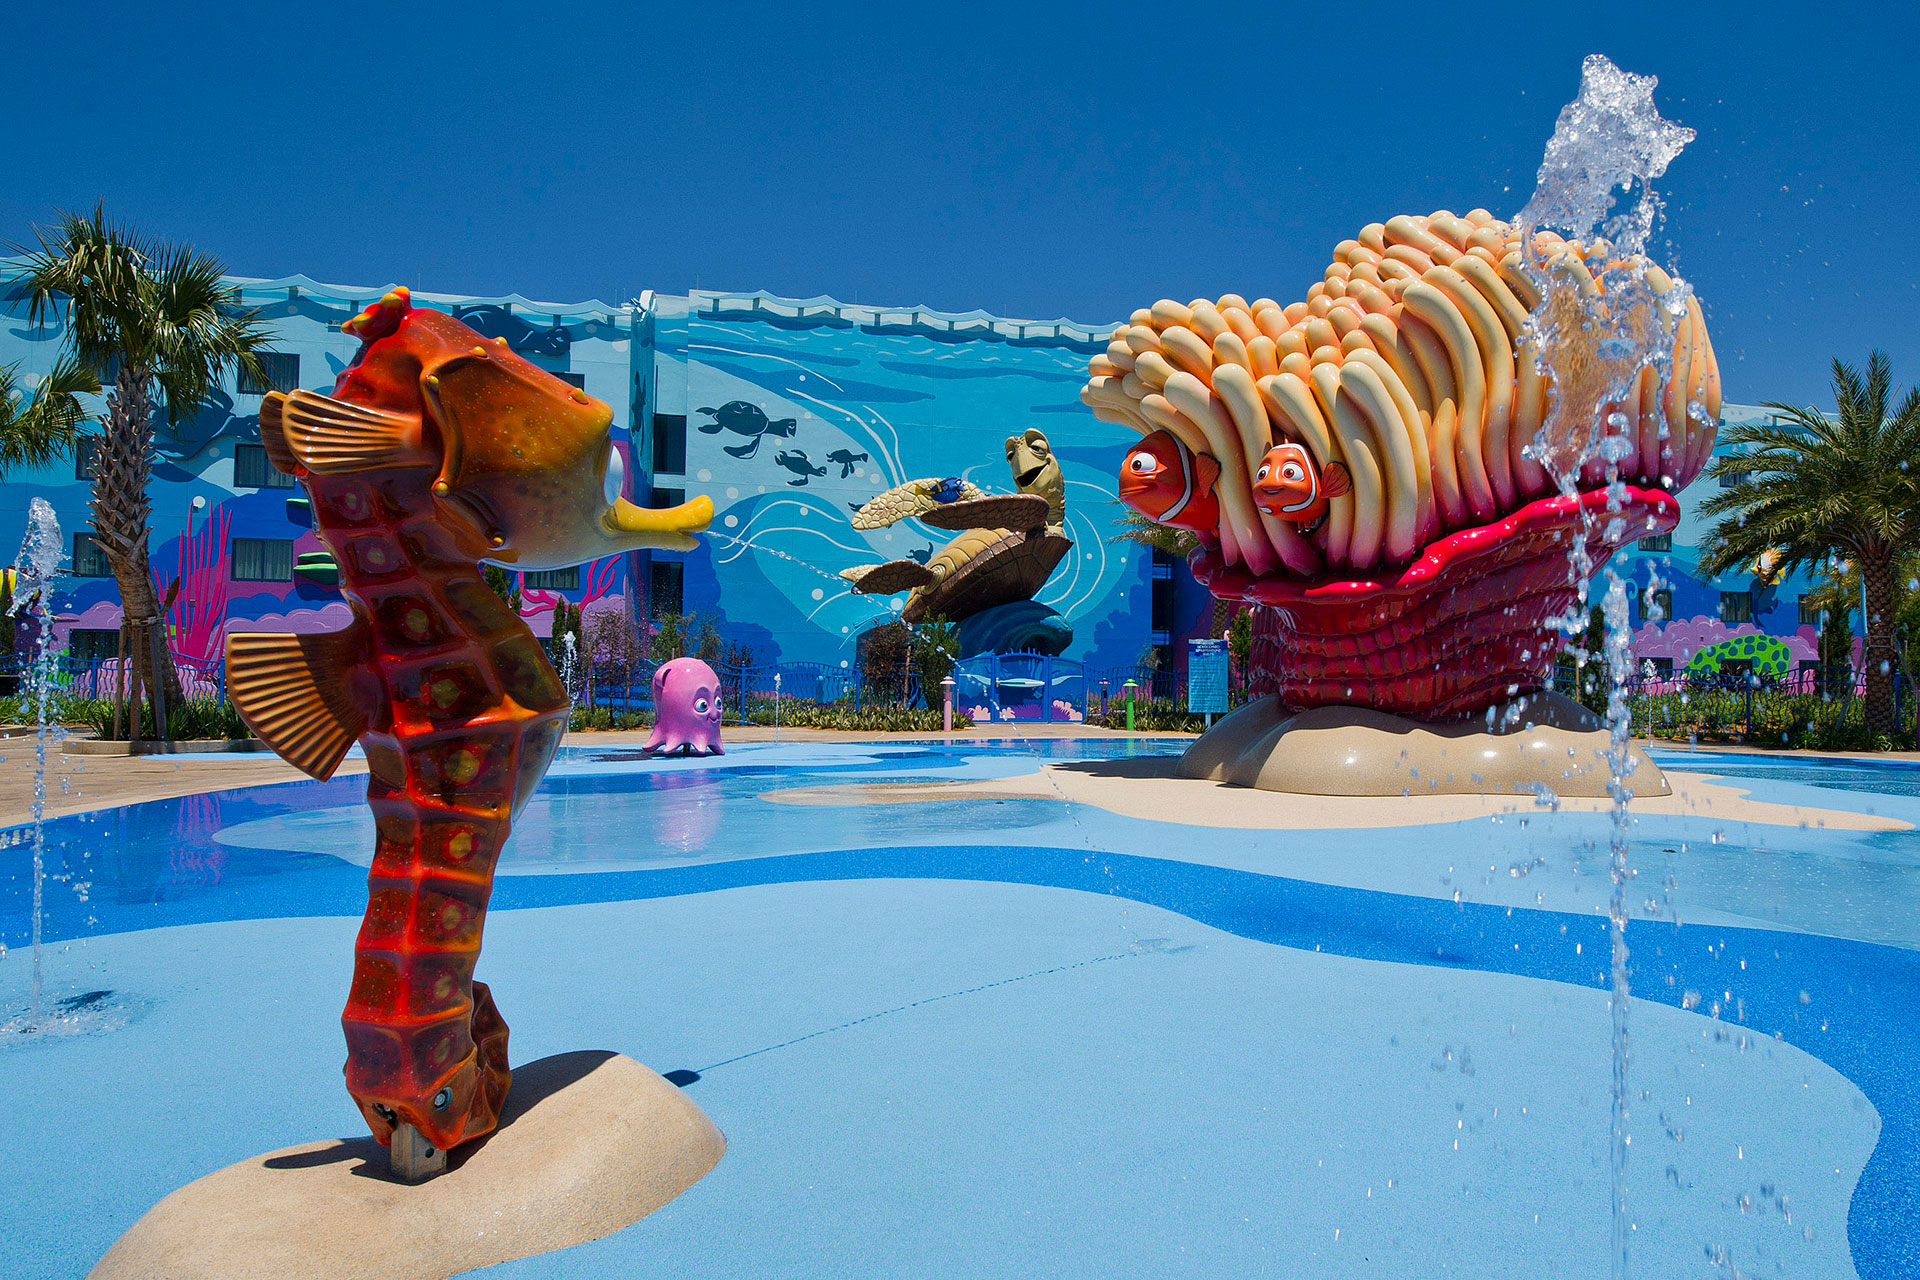 Big Blue Pool at Disney's Art of Animation Resort in Florida